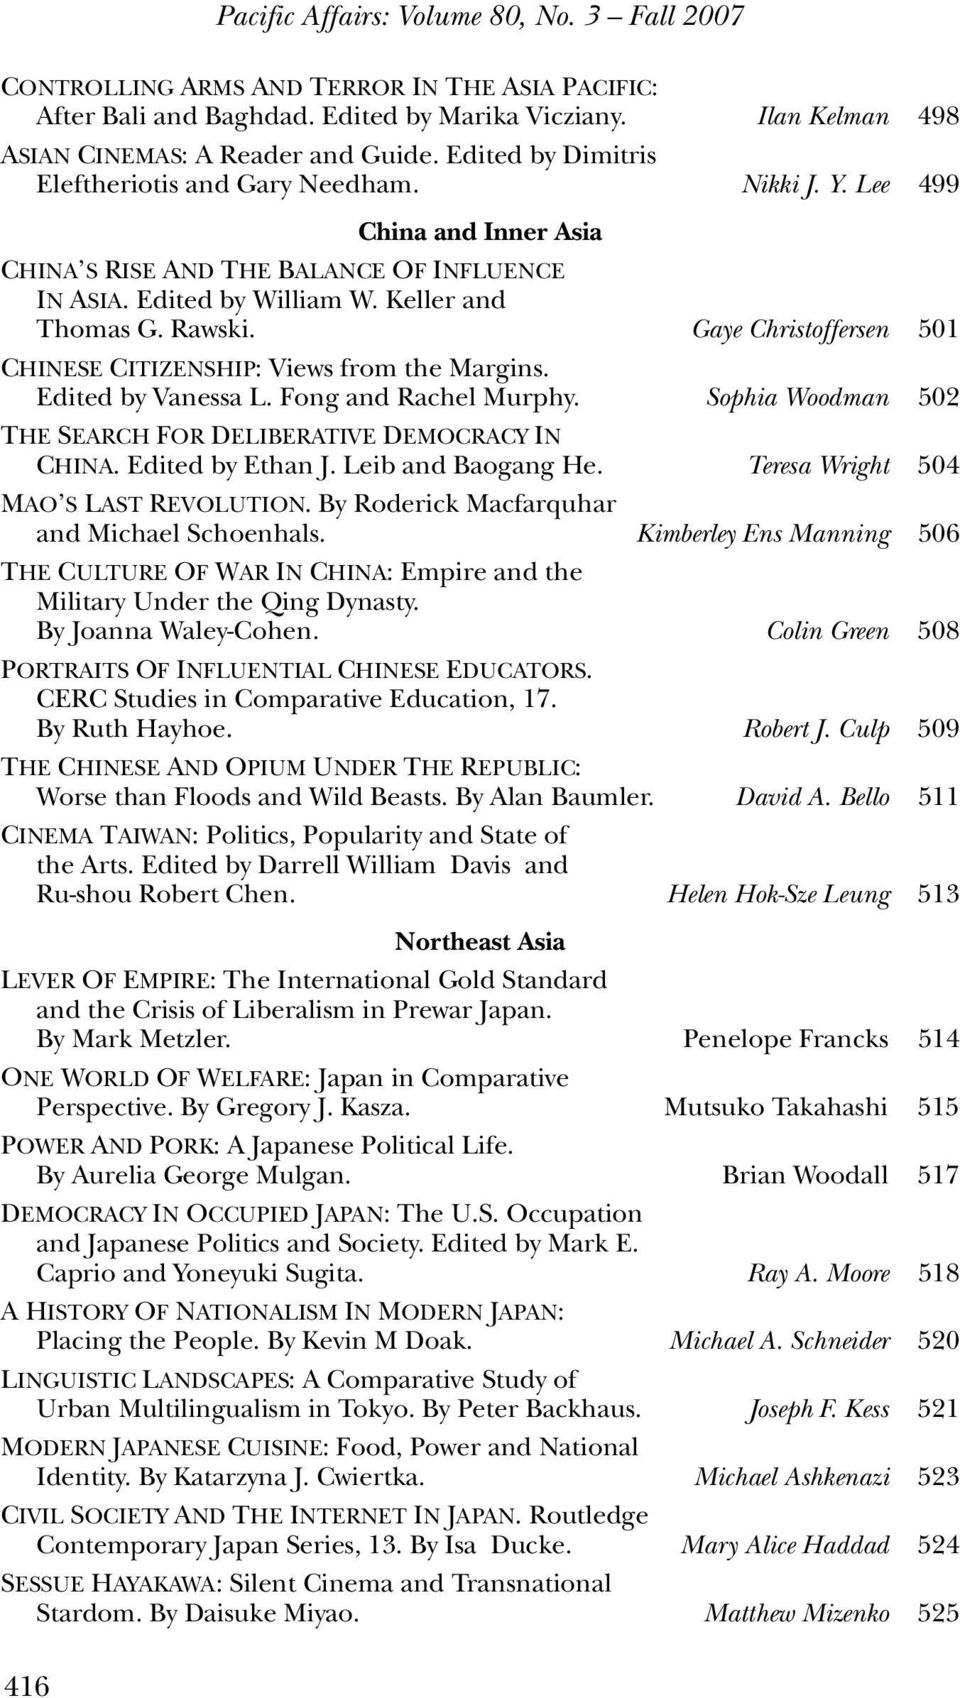 Gaye Christoffersen 501 CHINESE CITIZENSHIP: Views from the Margins. Edited by Vanessa L. Fong and Rachel Murphy. Sophia Woodman 502 THE SEARCH FOR DELIBERATIVE DEMOCRACY IN CHINA. Edited by Ethan J.